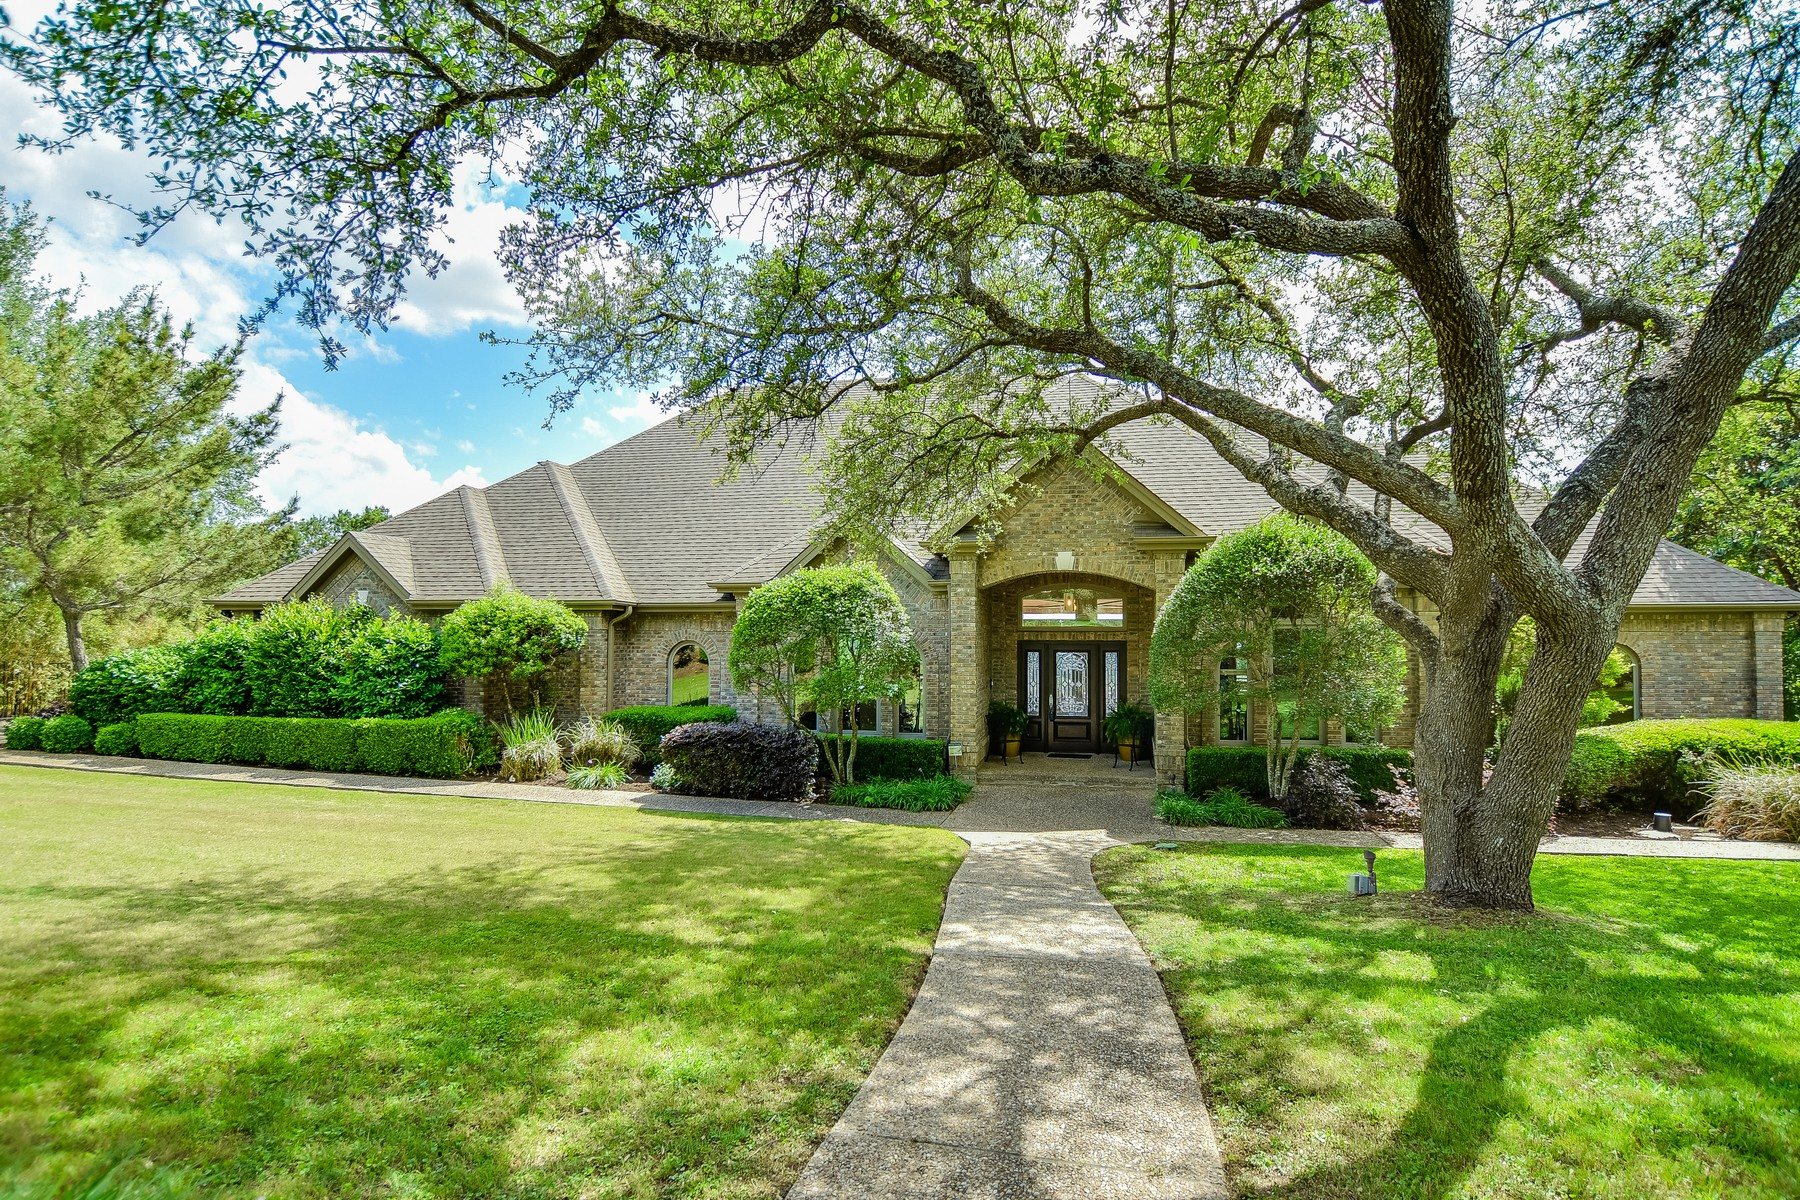 Single Family Home for Sale at Stunning 3± Acre Texas Hill Country Estate 9405 Bell Mountain Dr Austin, Texas 78730 United States